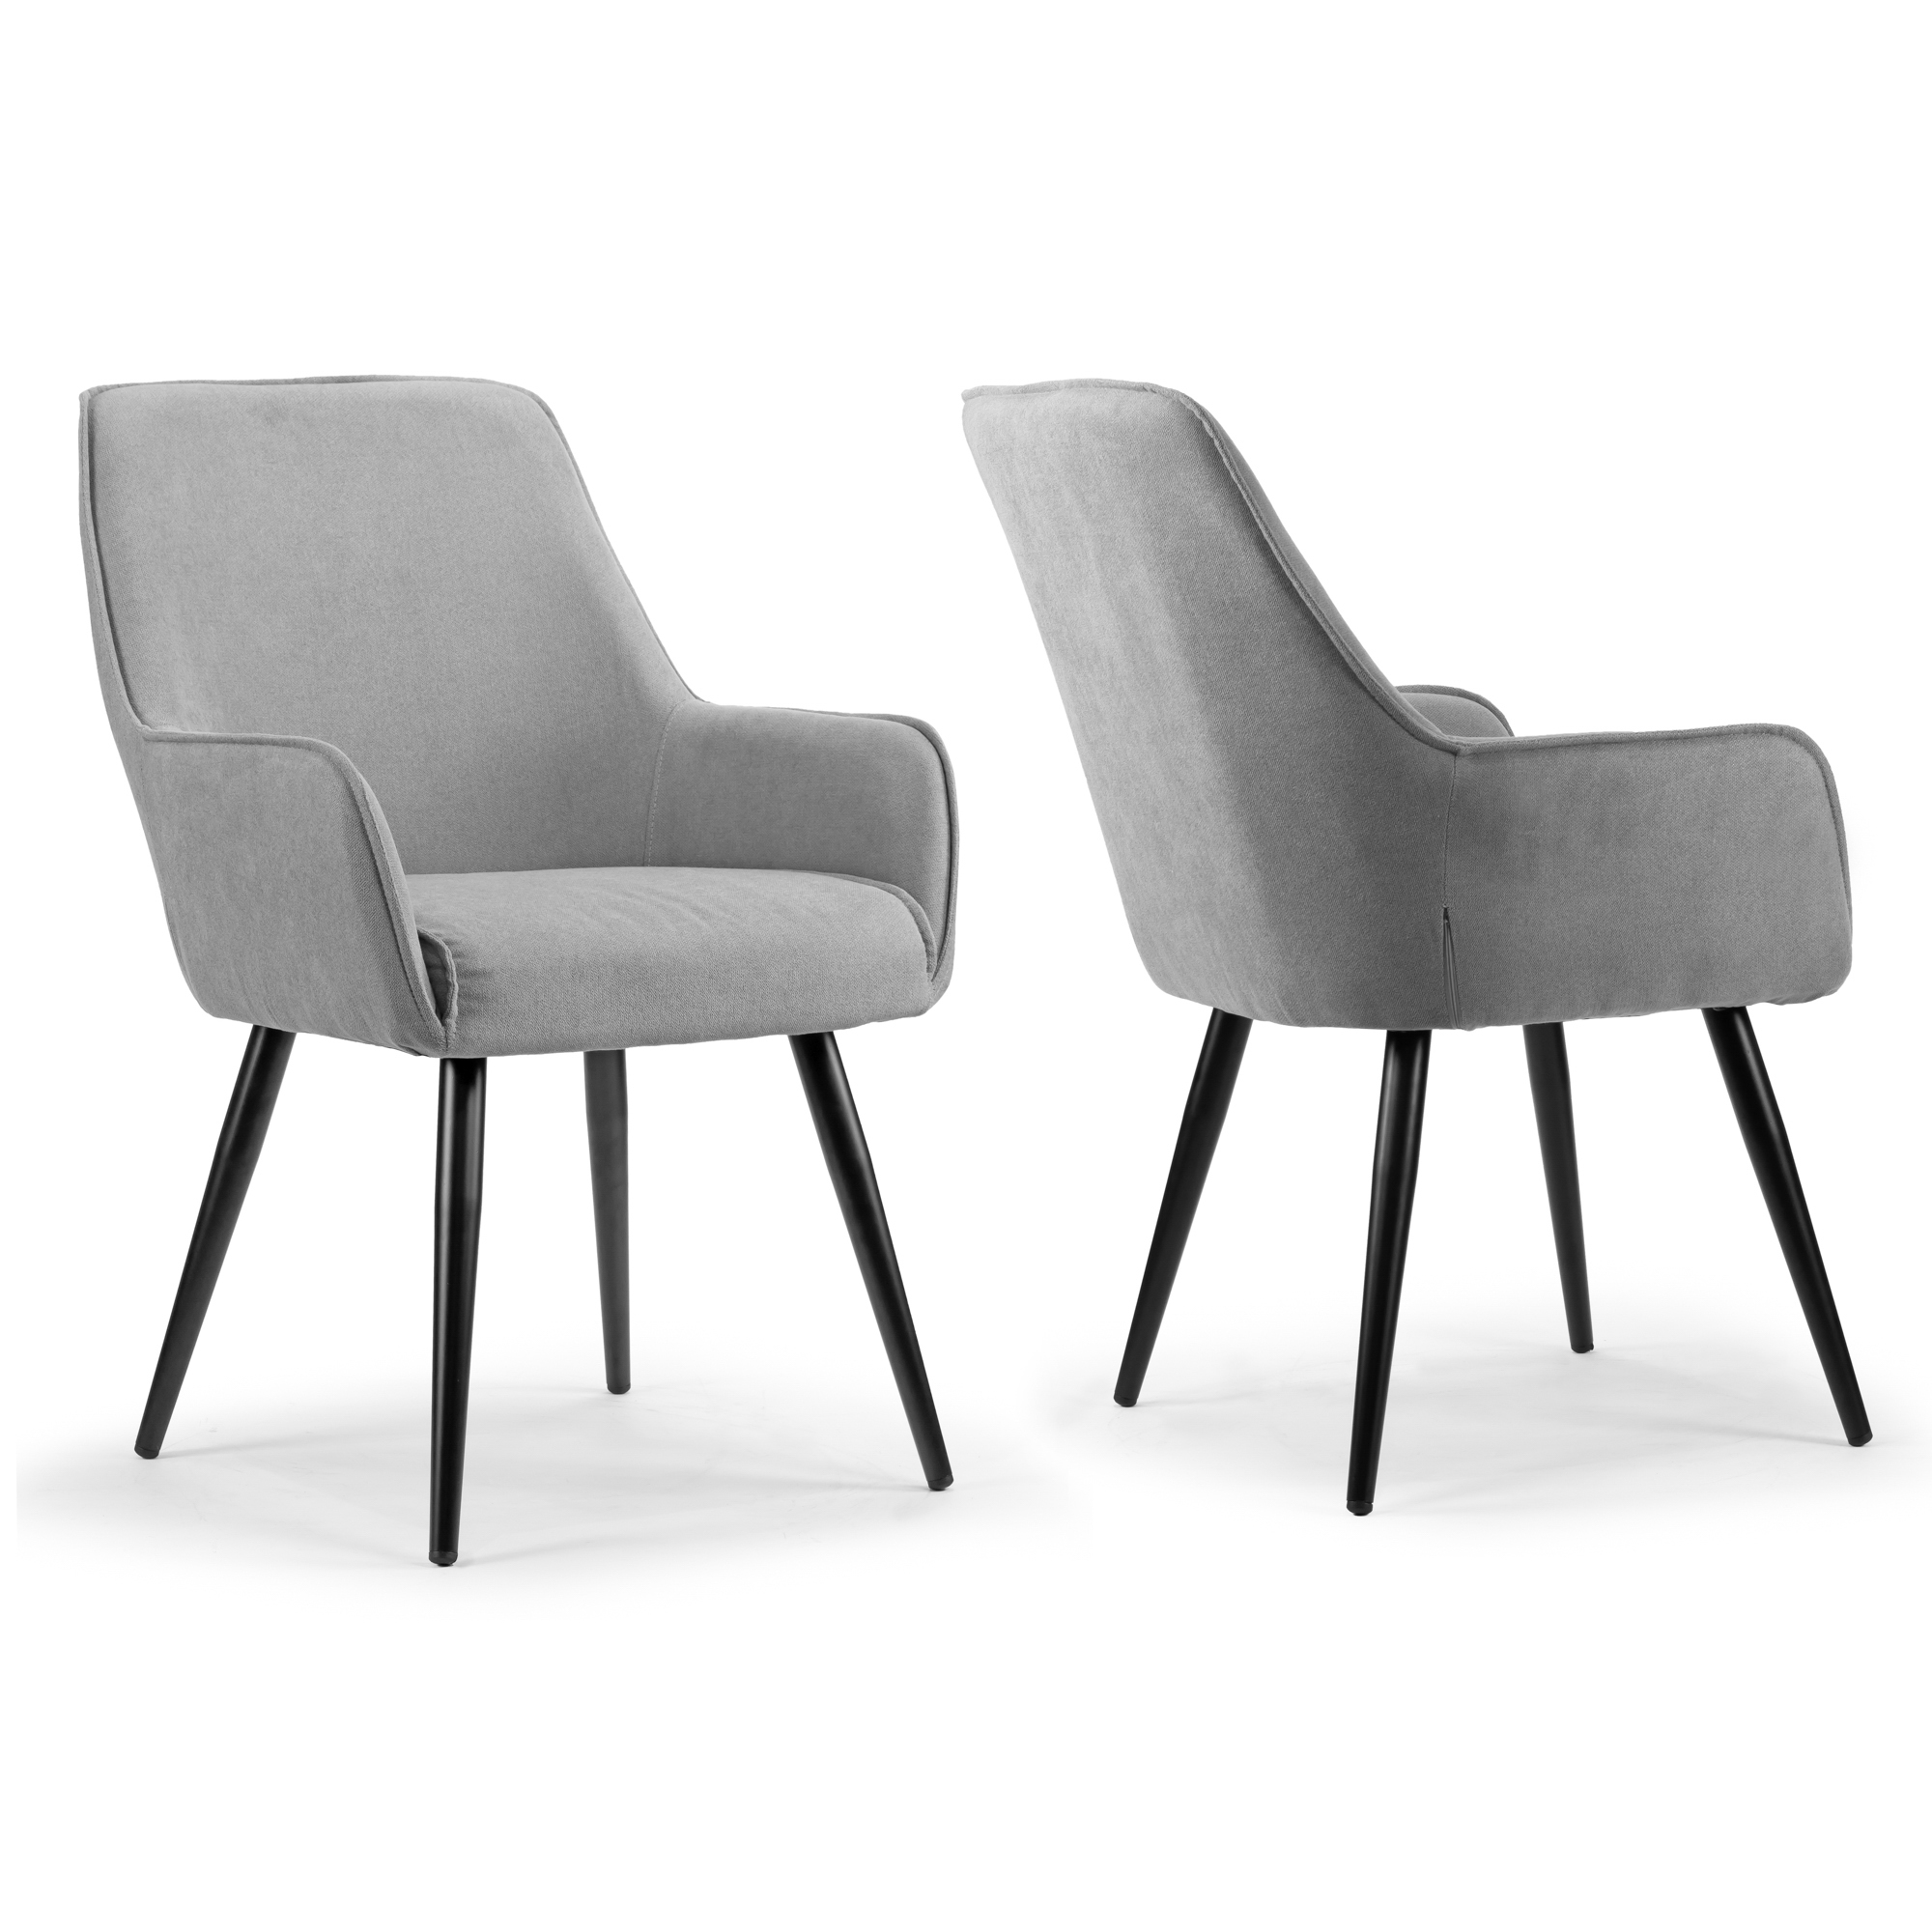 Black Metal Dining Chairs Set Of 2 Amir Grey Dining Chair With Black Metal Legs And